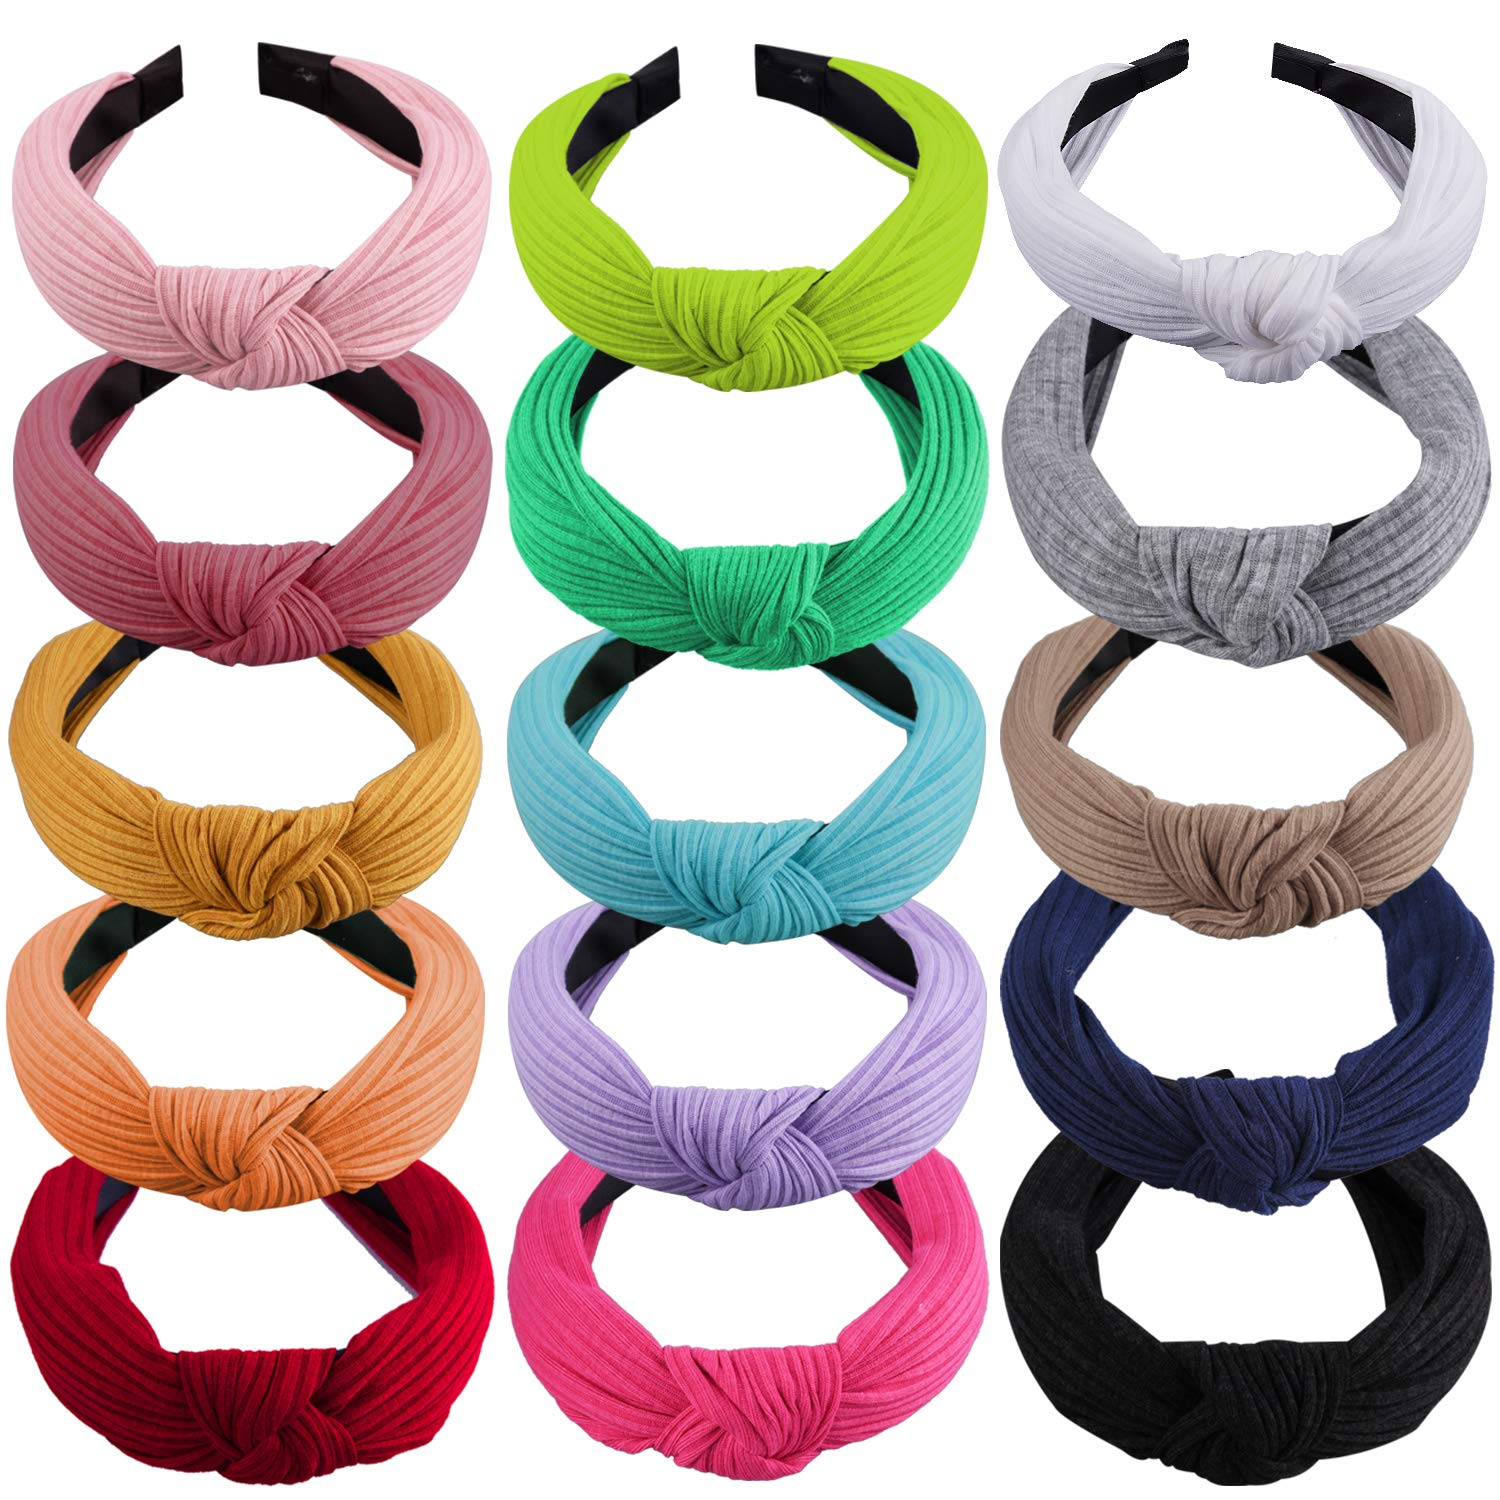 SIQUK 15 Pieces Top Knot Headband Turban Headbands with Cross Knot Wide Cloth Headband for Womem and Girls by SIQUK